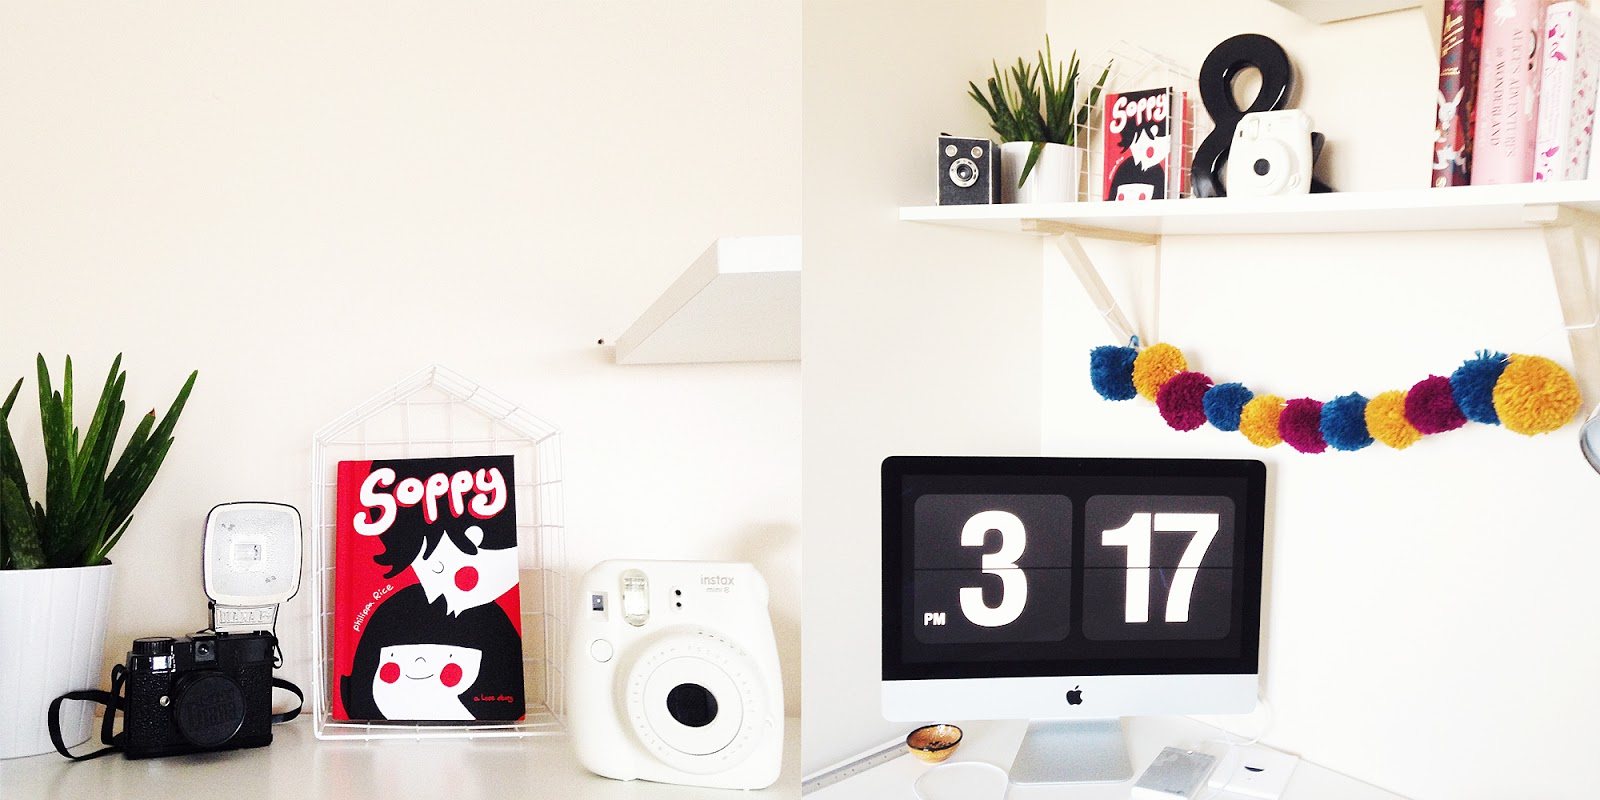 iMac, Office, Shelfie, Shelves, Organised, Lifestyle Blogger, lbloggers